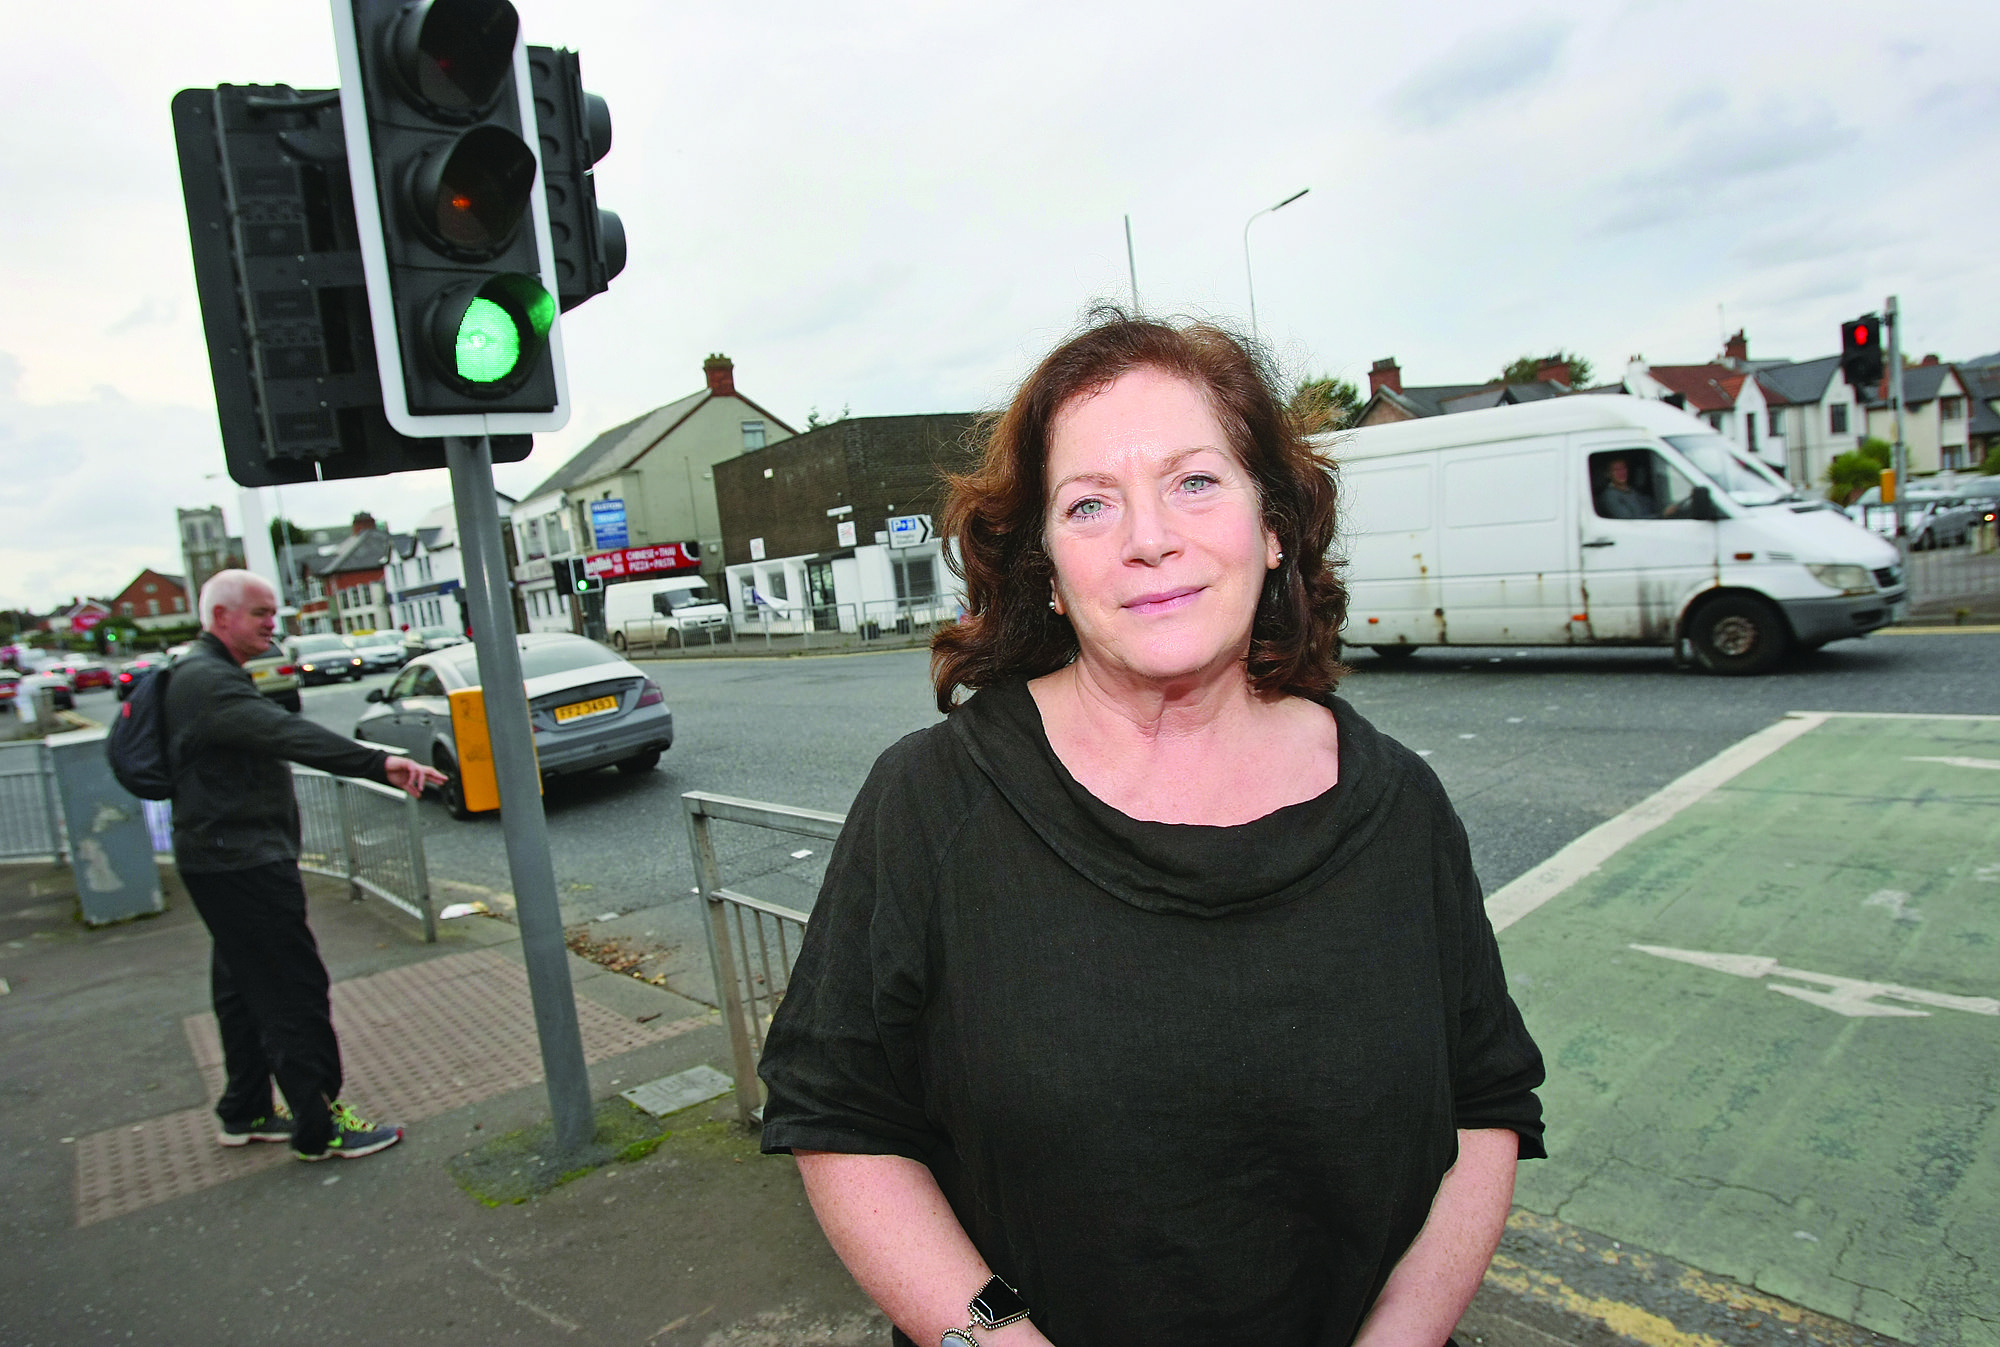 PARAMILITARY UPSURGE: Cllr Geraldine McAteer at Finaghy, where the UDA have been active recently